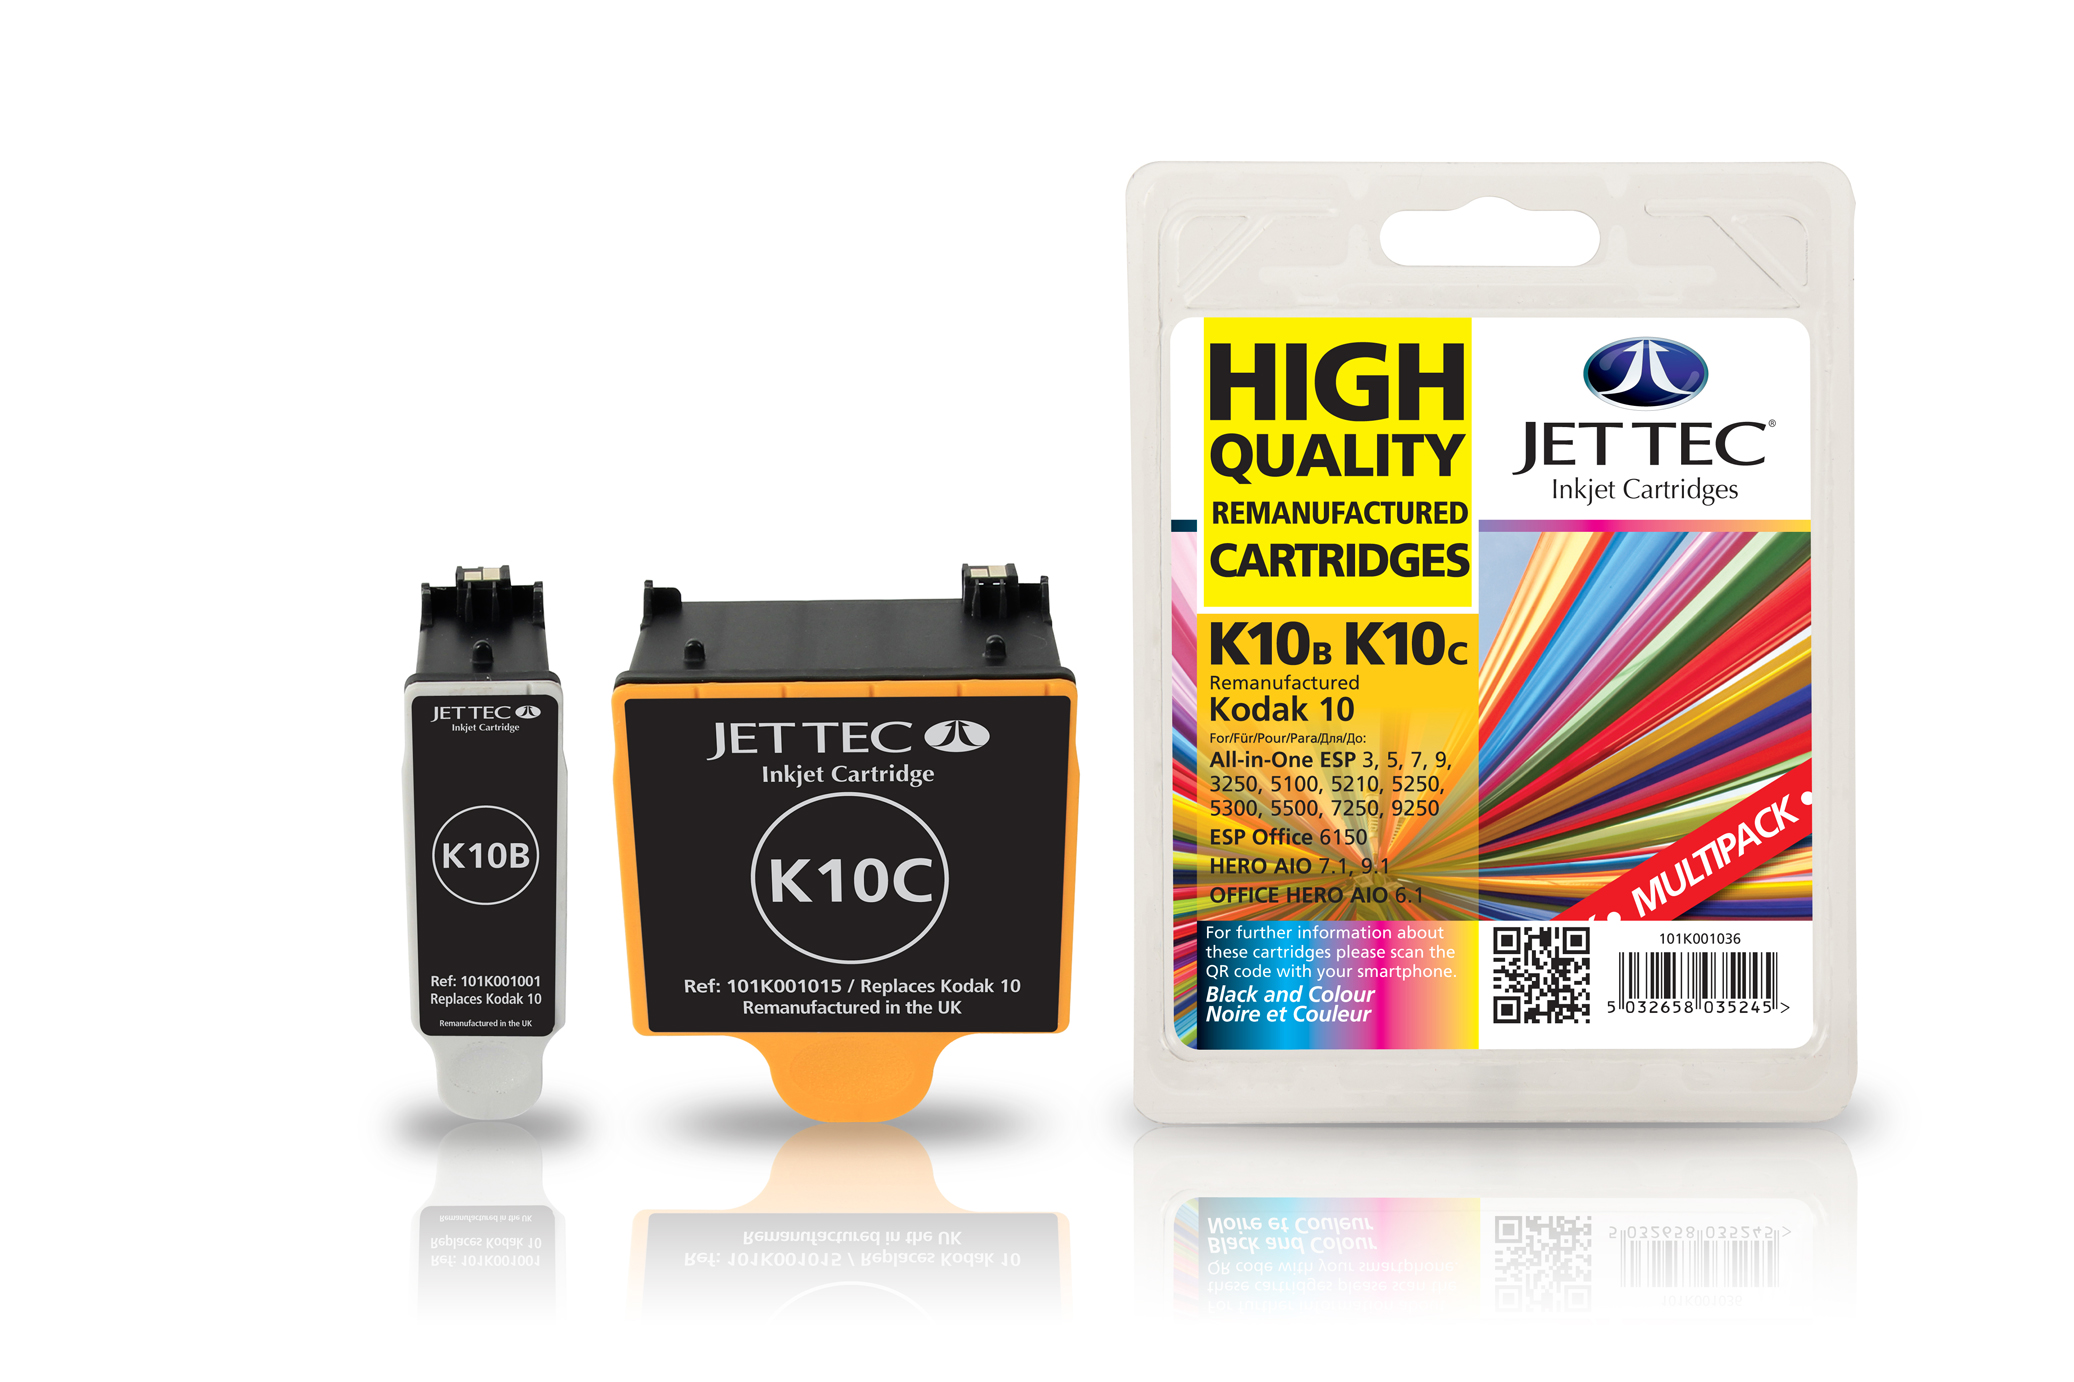 Jet Tec K10MP remanufactured Kodak 10 black & colour inkjet cartridges